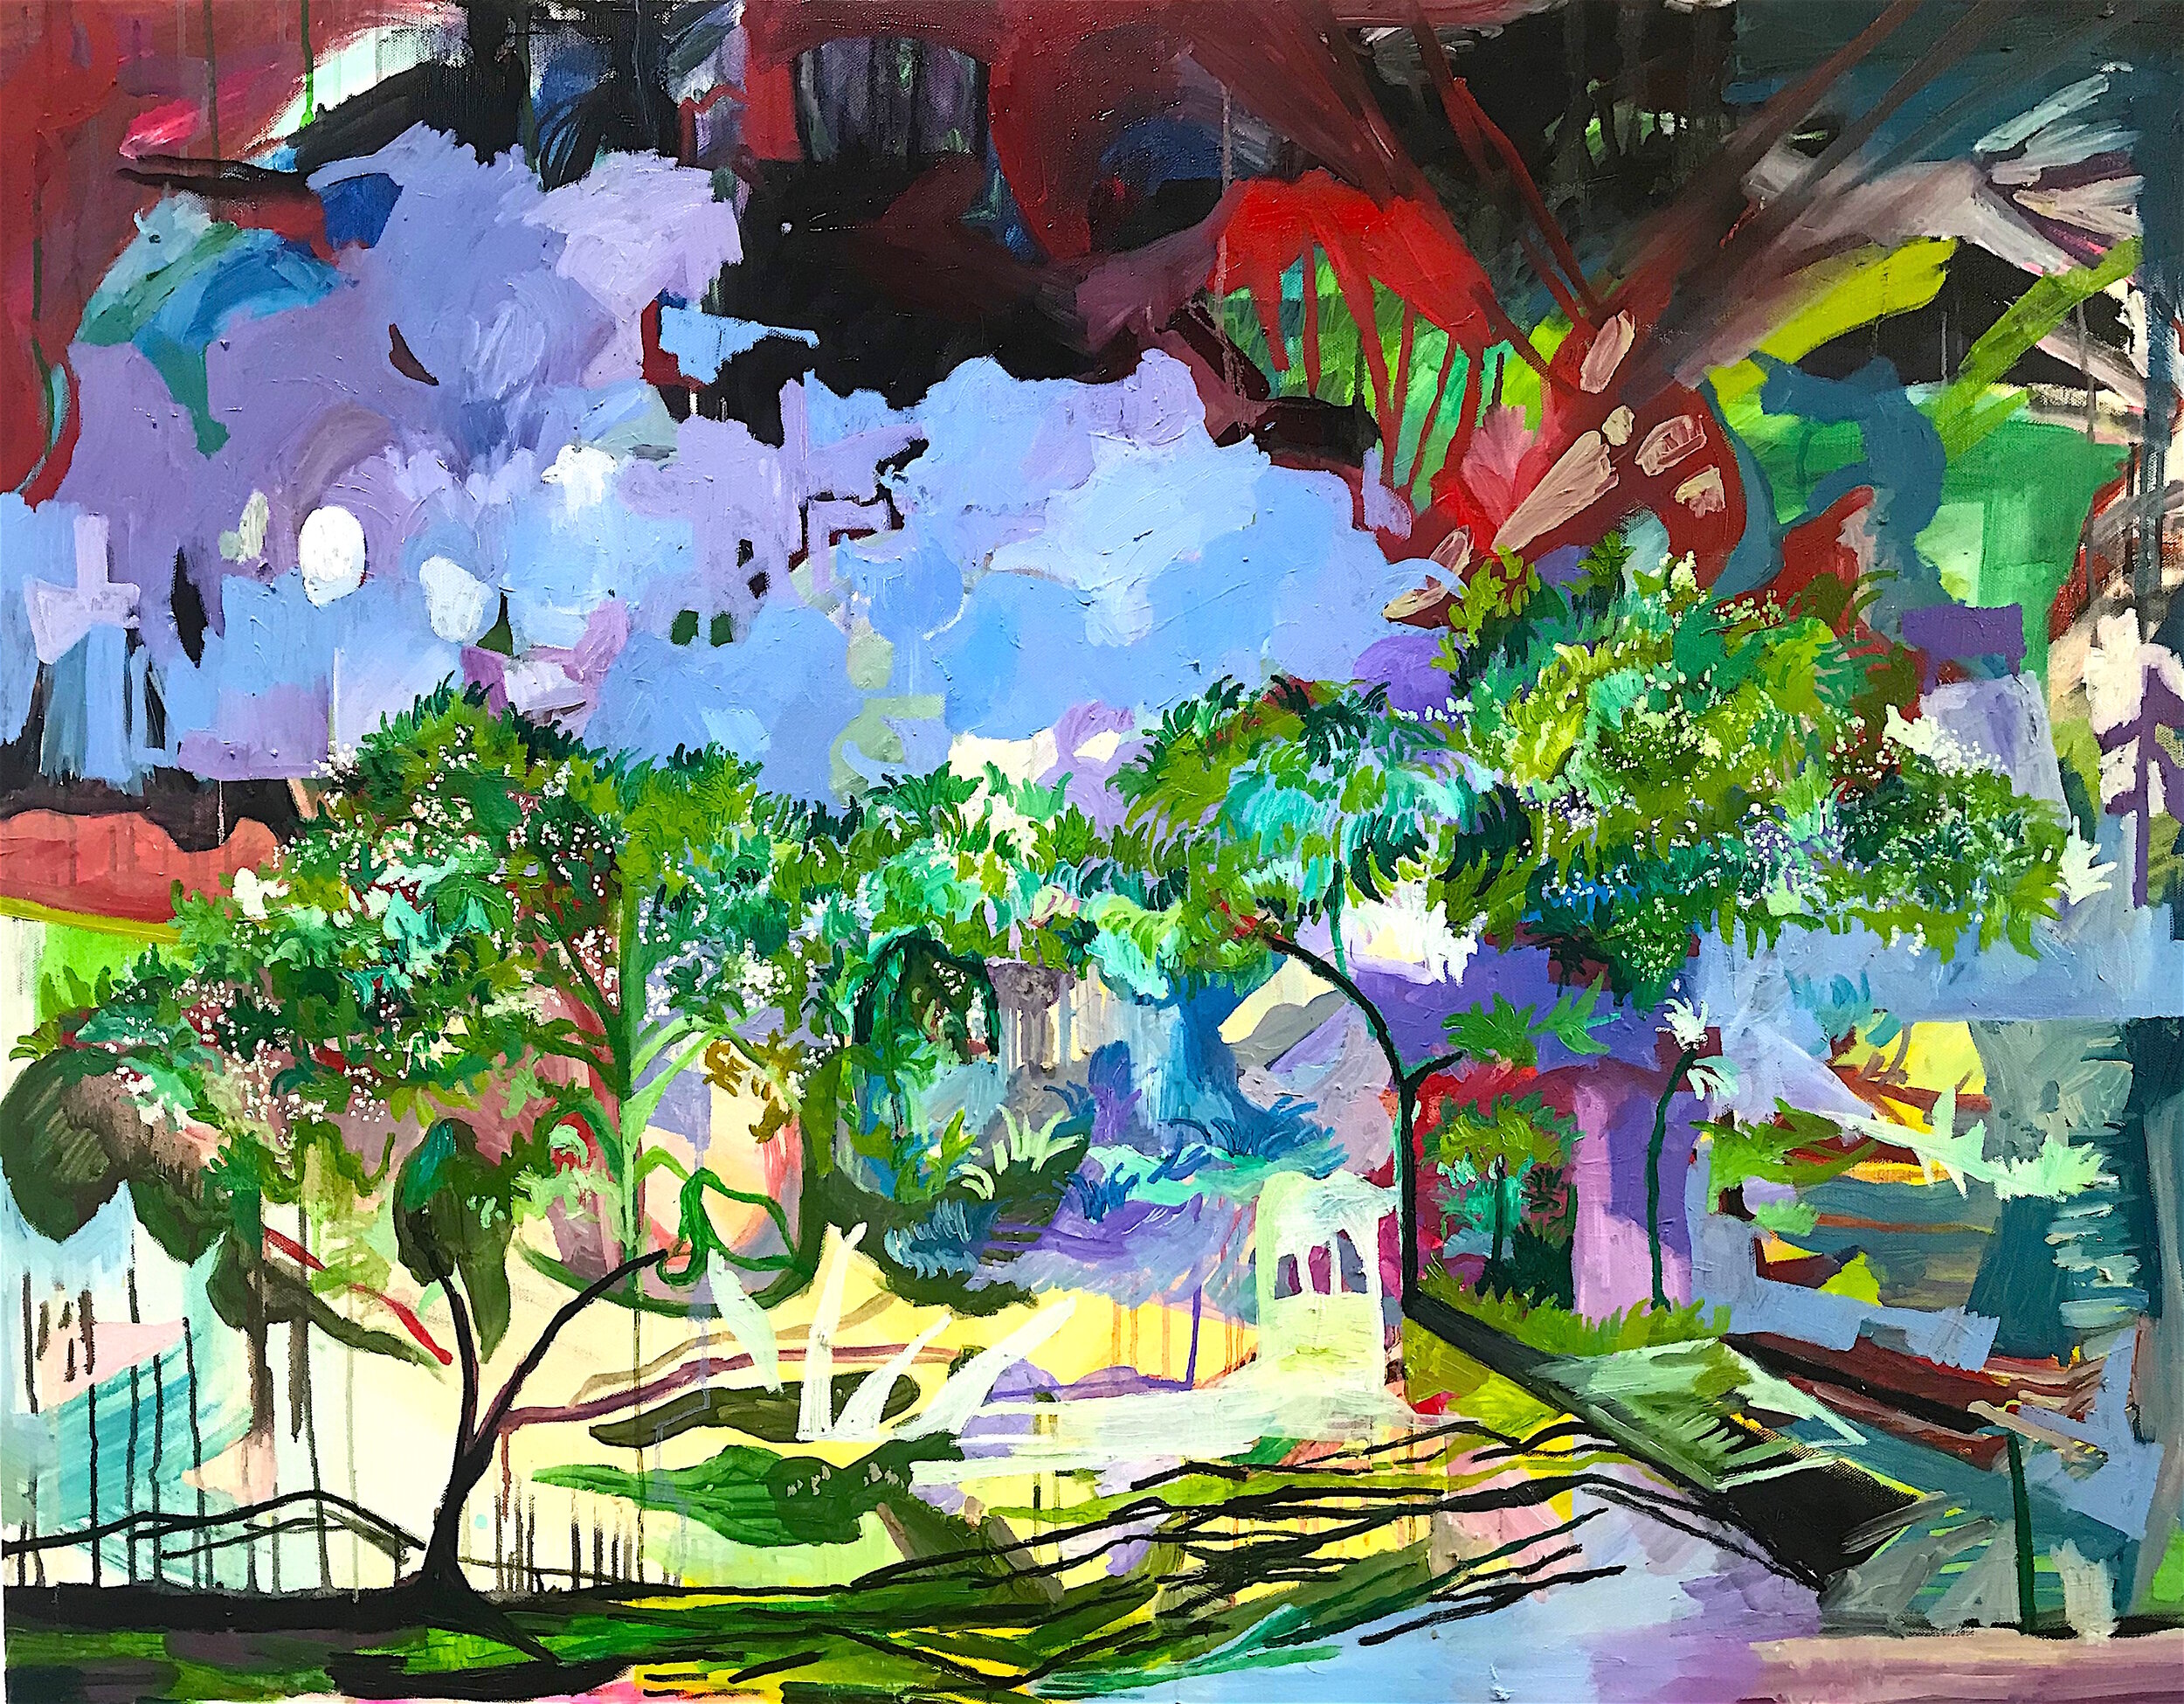 The Sky is a Pond (oil on canvas, 130x100cm)